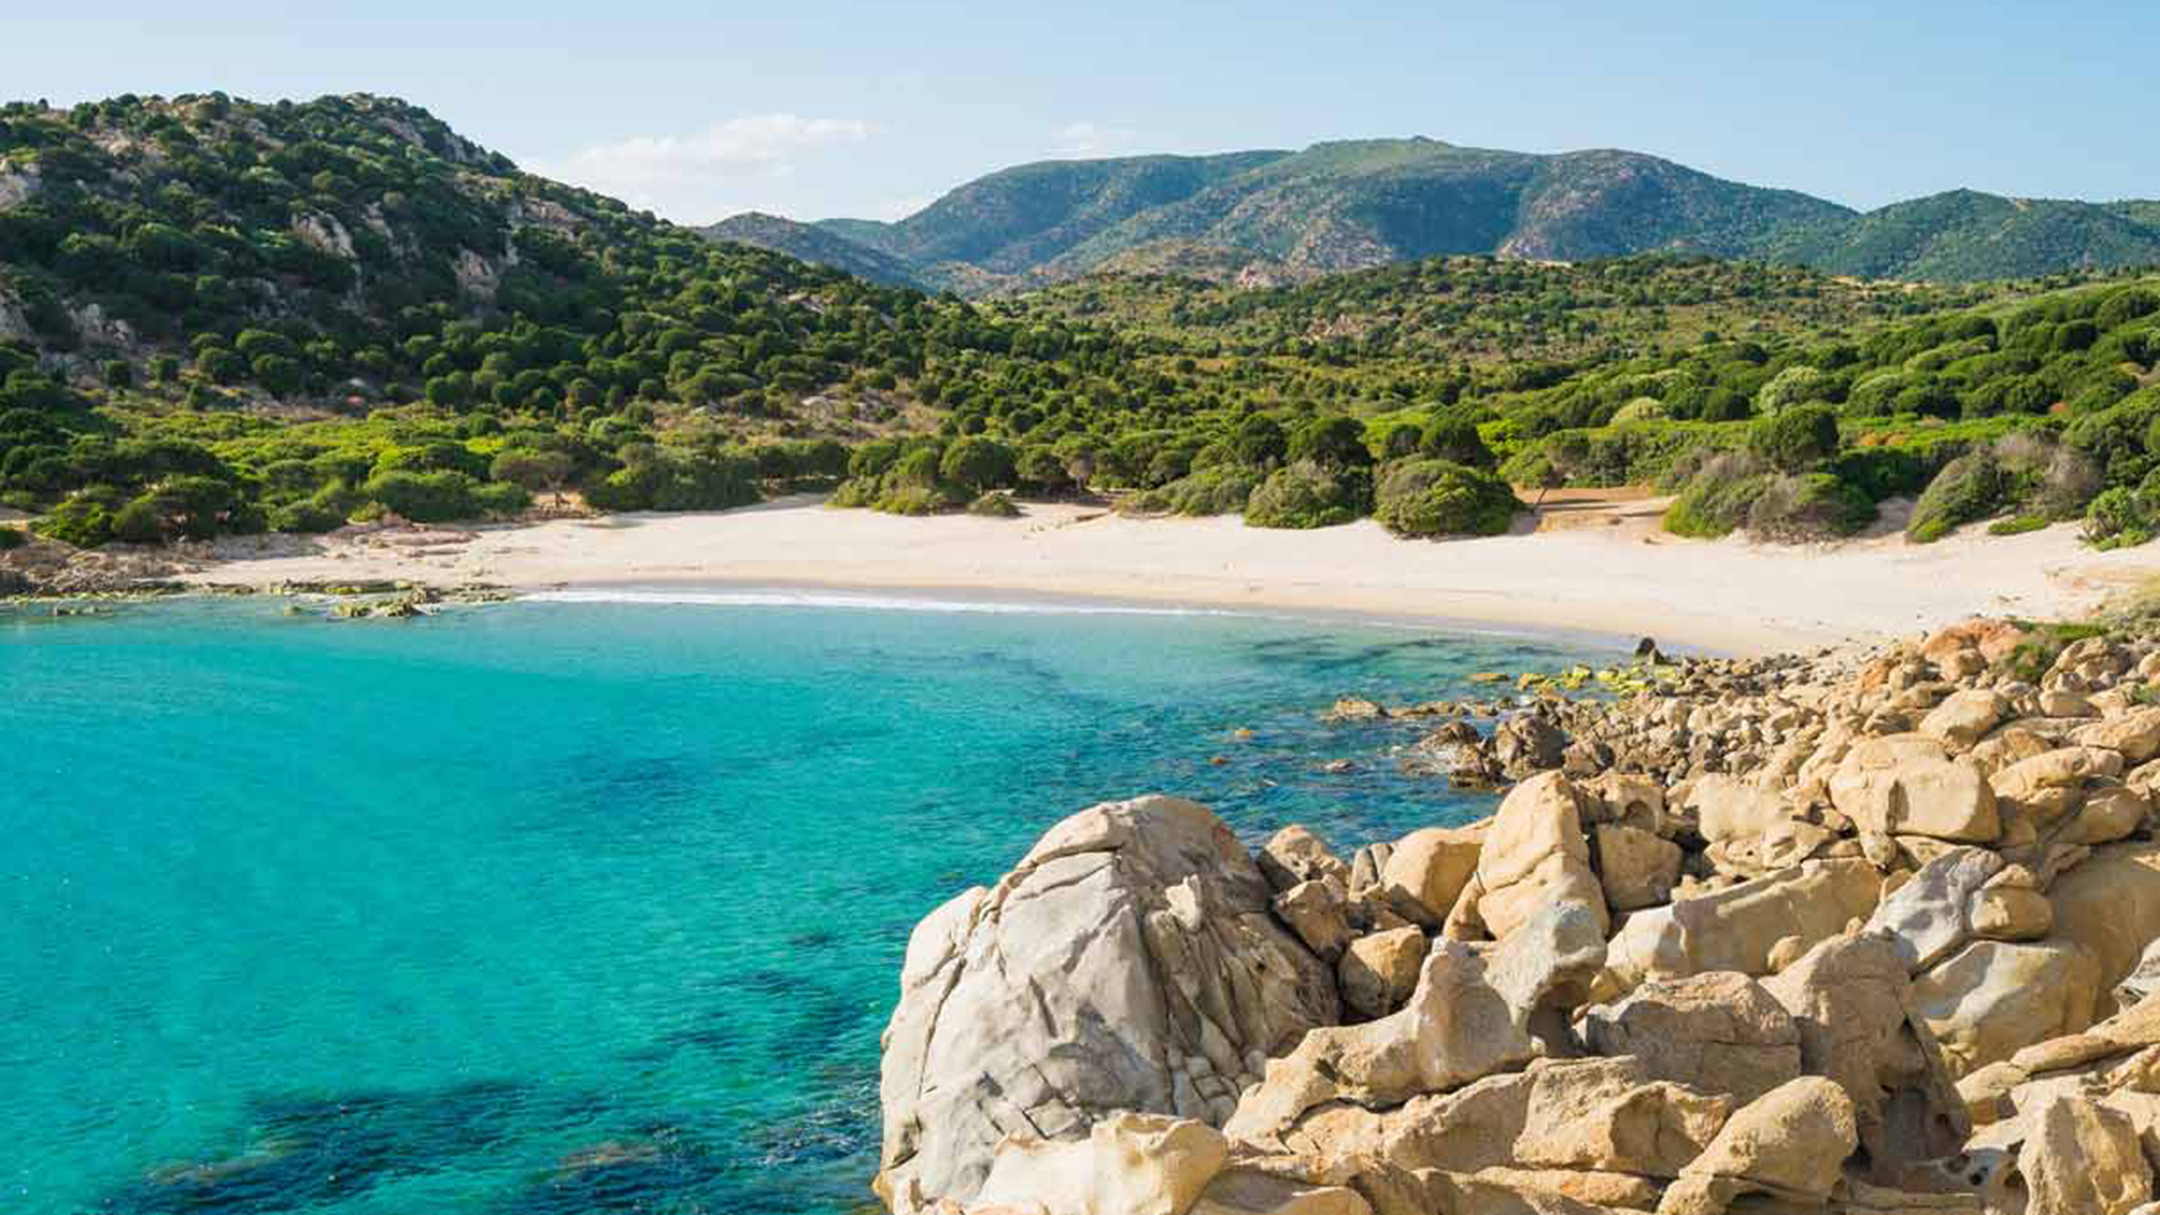 Sardinia is the destination where everyone will want to go this summer